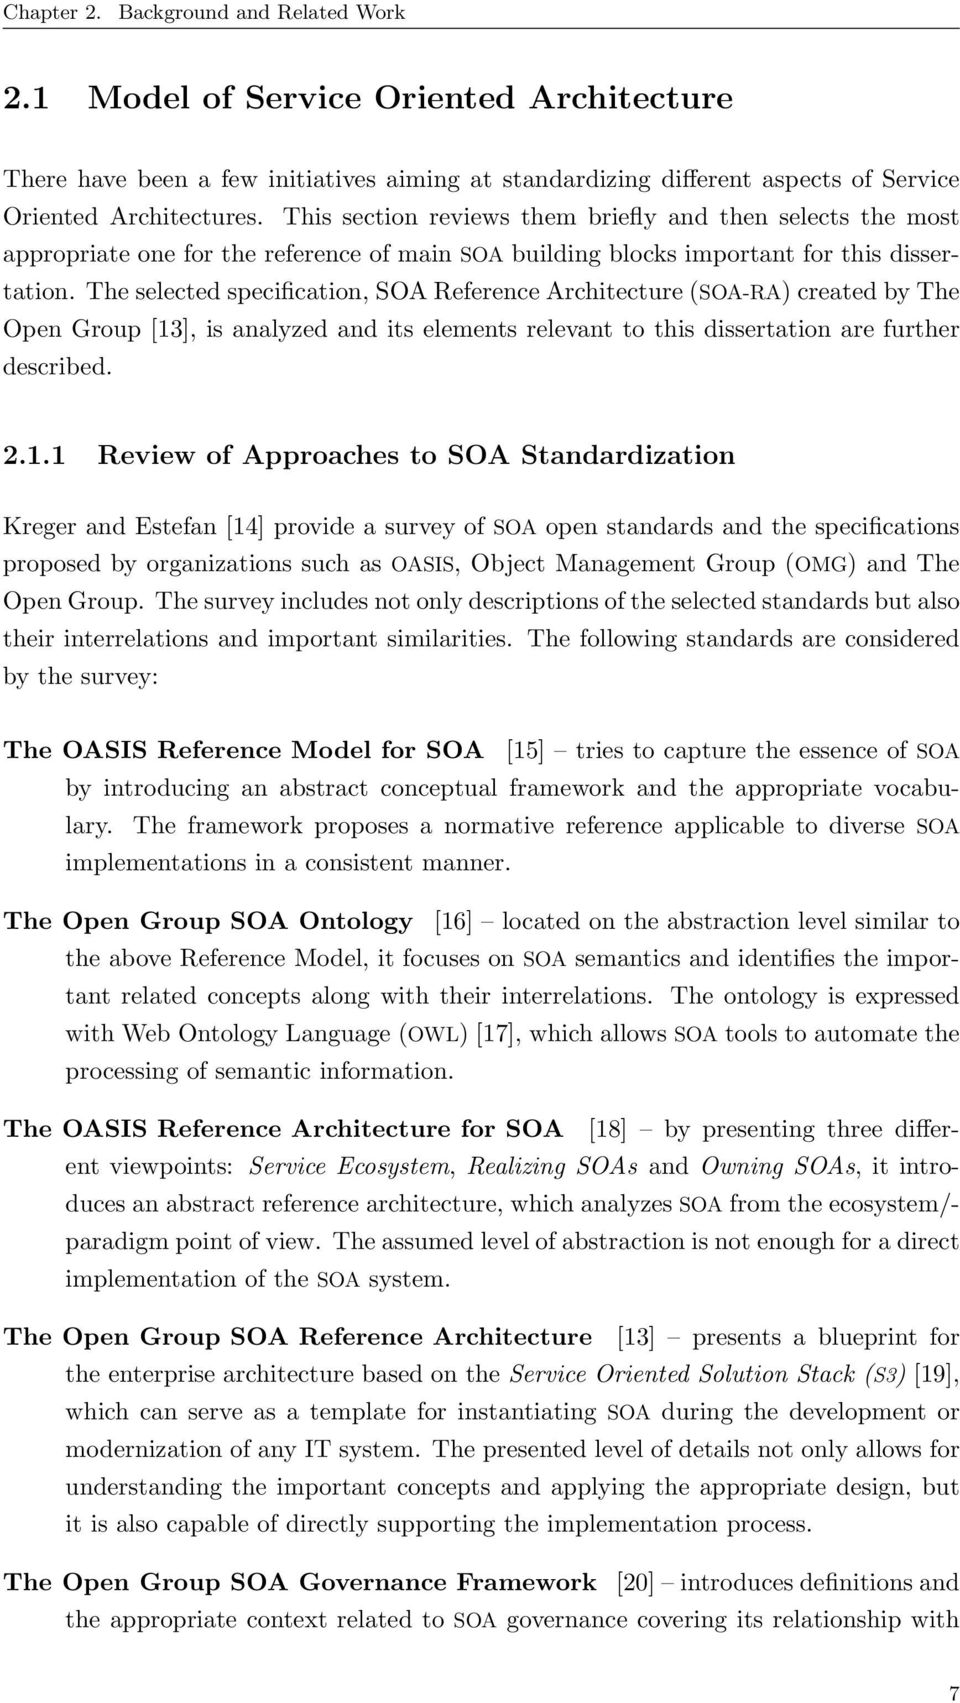 The selected specification, SOA Reference Architecture (SOA-RA) created by The Open Group [13